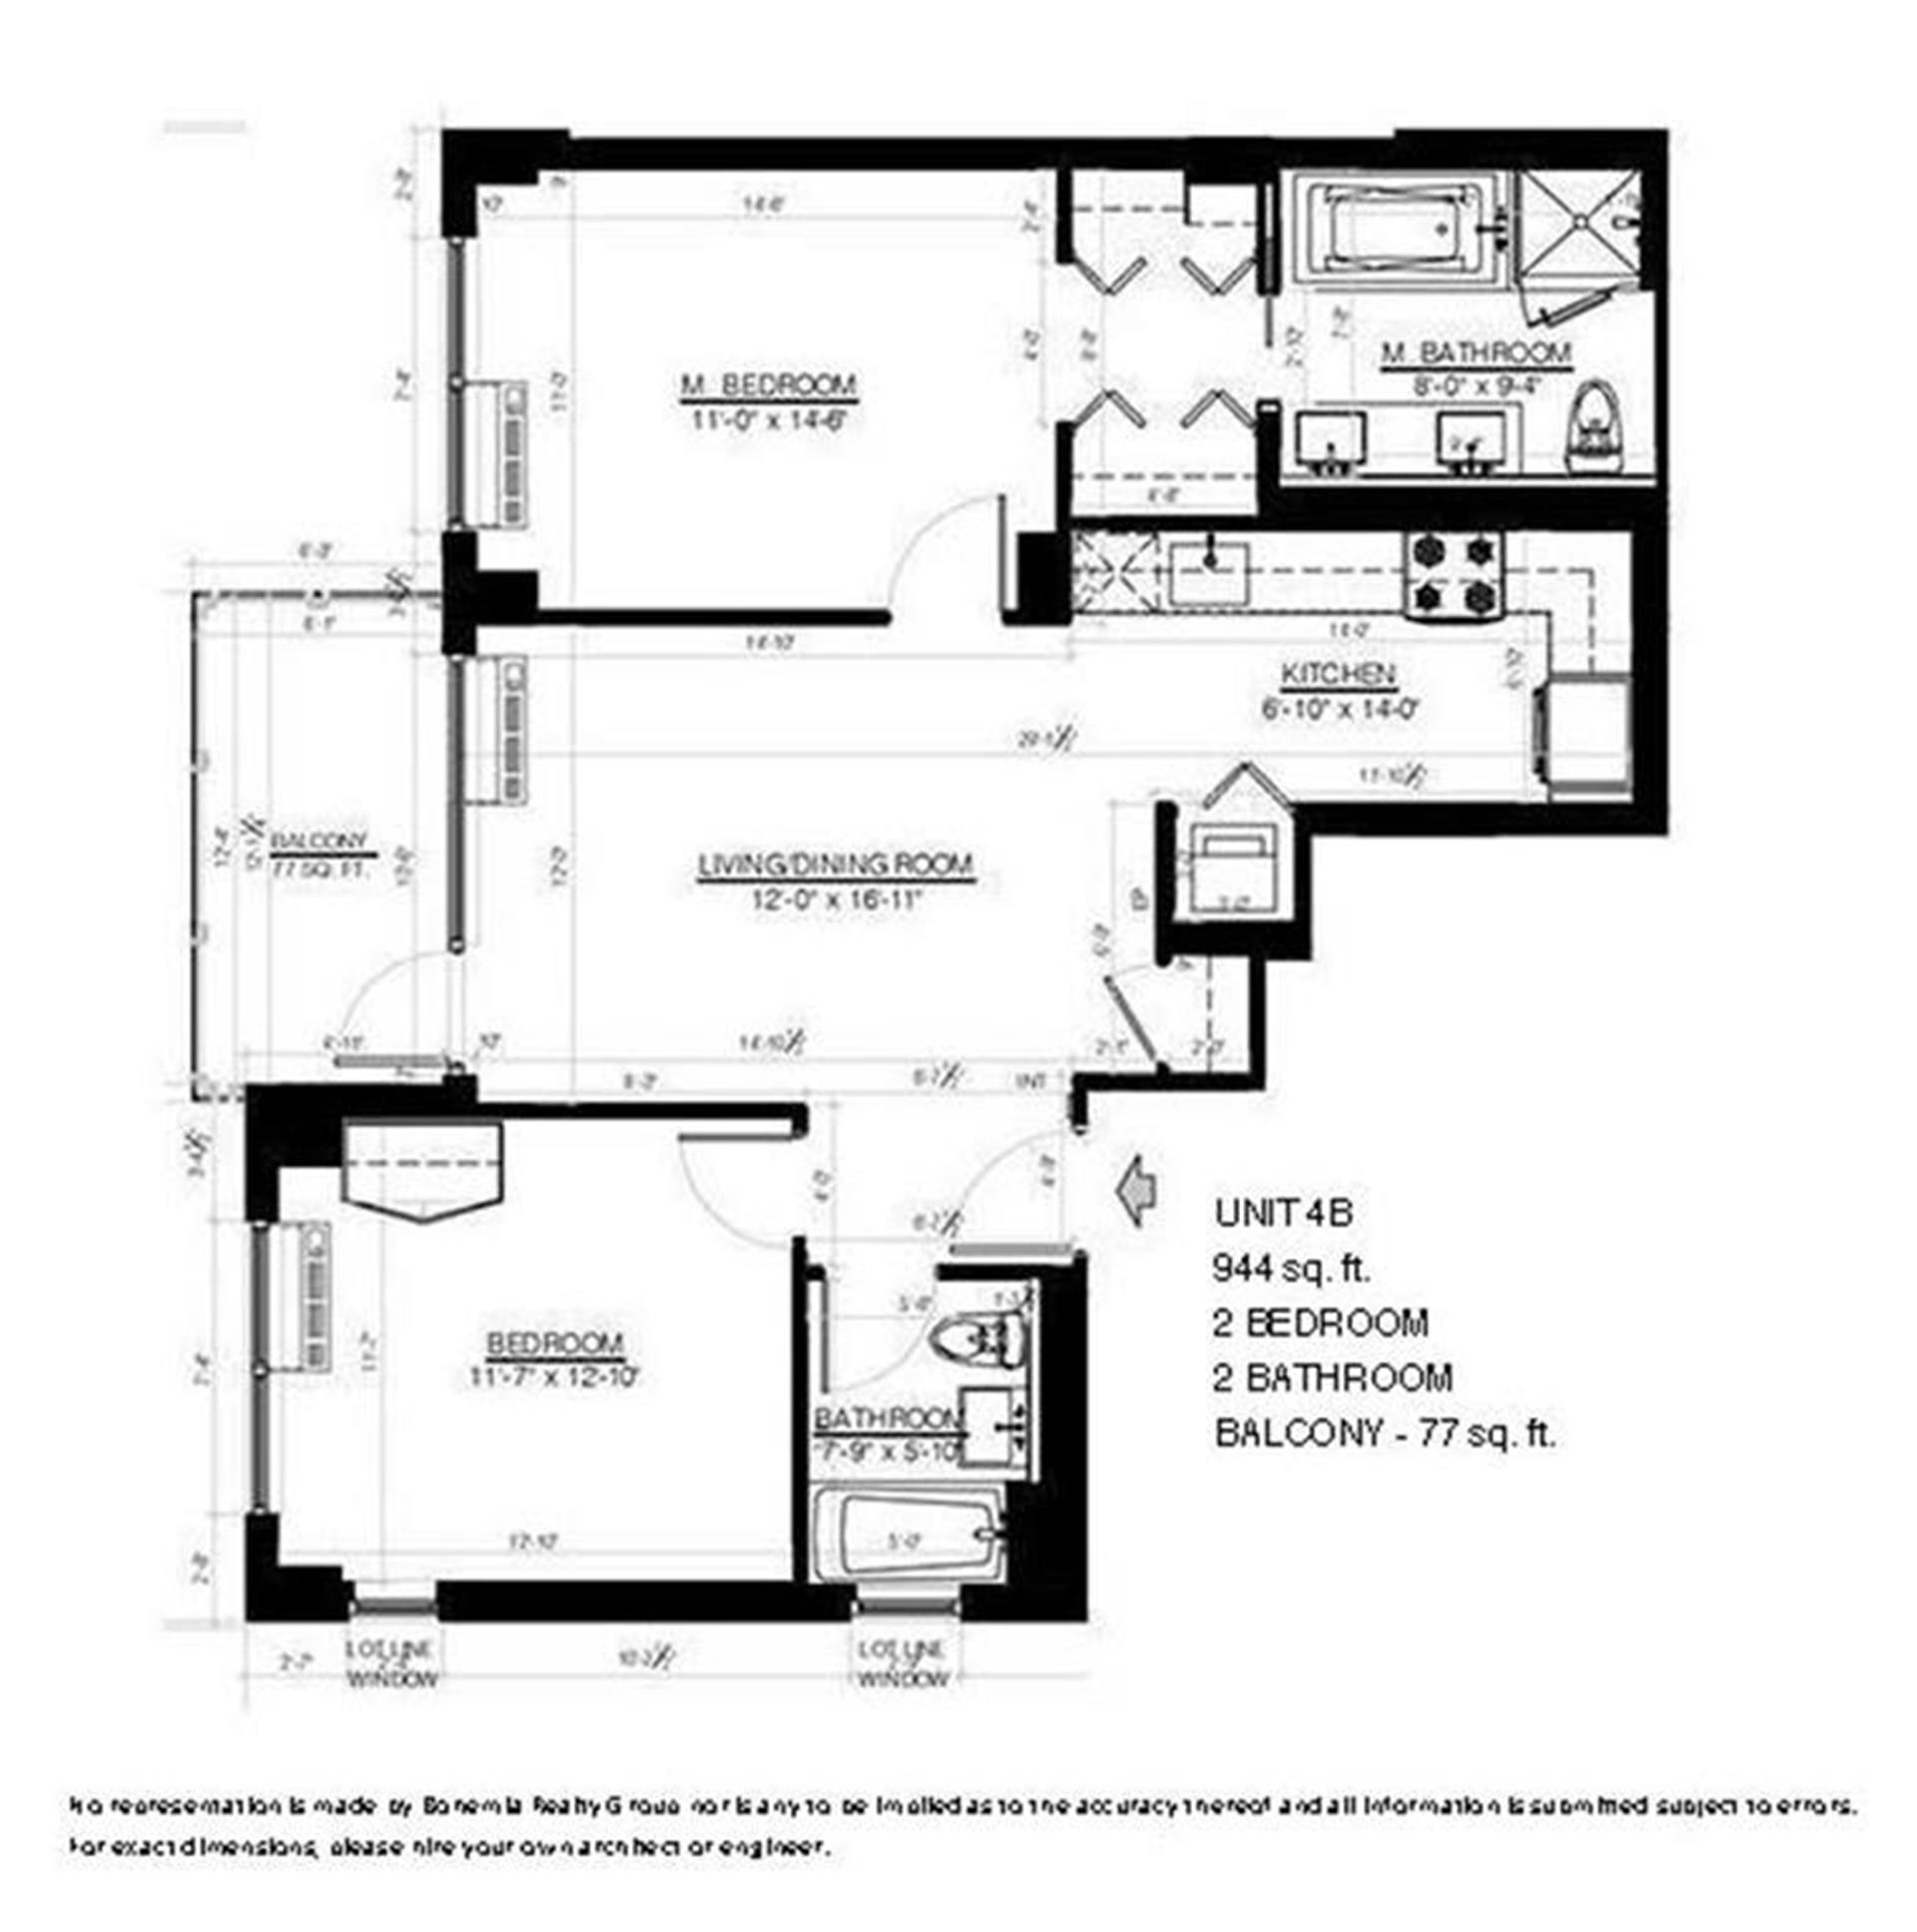 Floor plan of Morningside Condominiums, 306 West 116th St, 4B - Harlem, New York